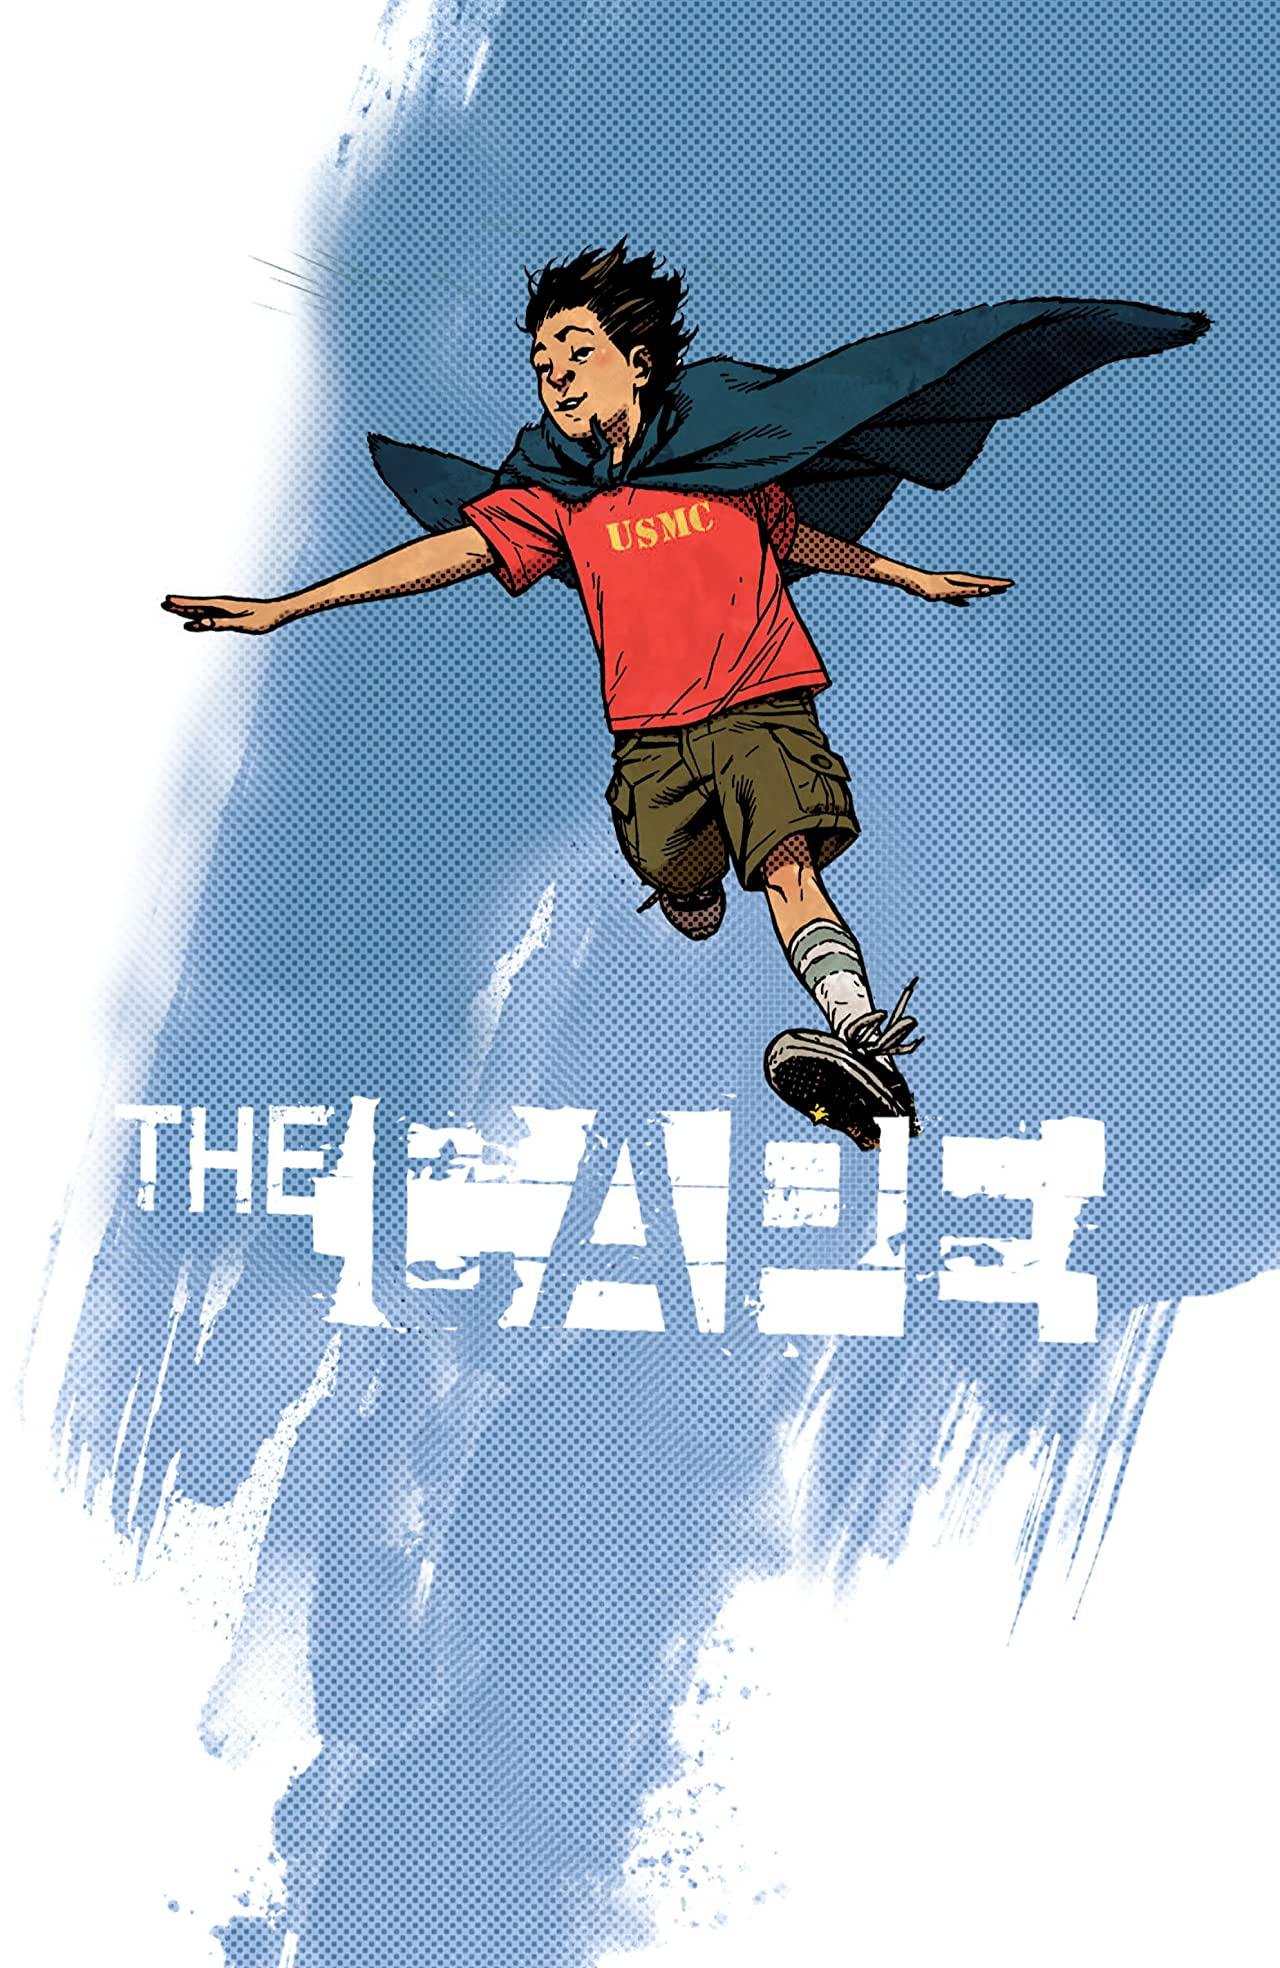 Joe Hill's The Cape